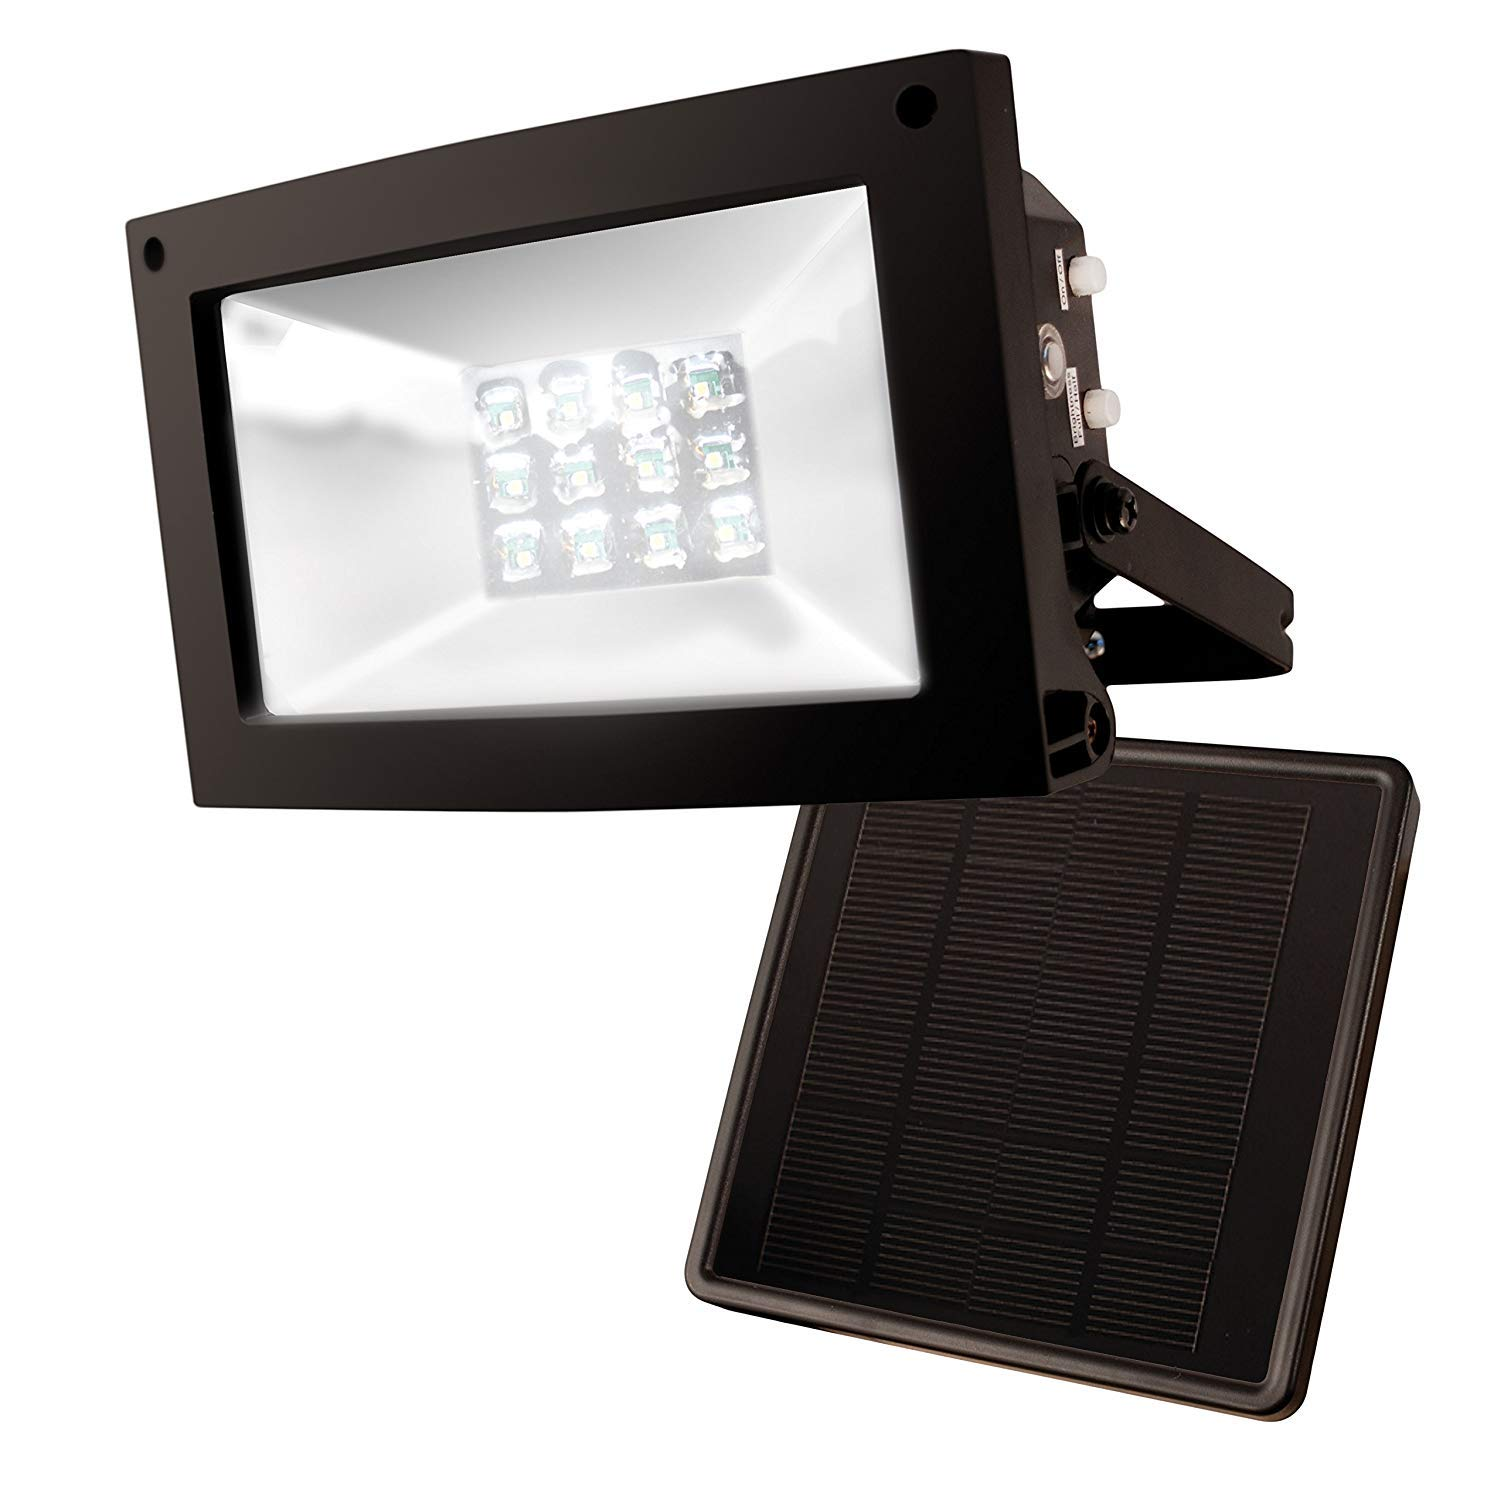 MAXSA Innovations Motion-Activated Solar Security Camera and Floodlight - 44642 CAM BK Maxsa